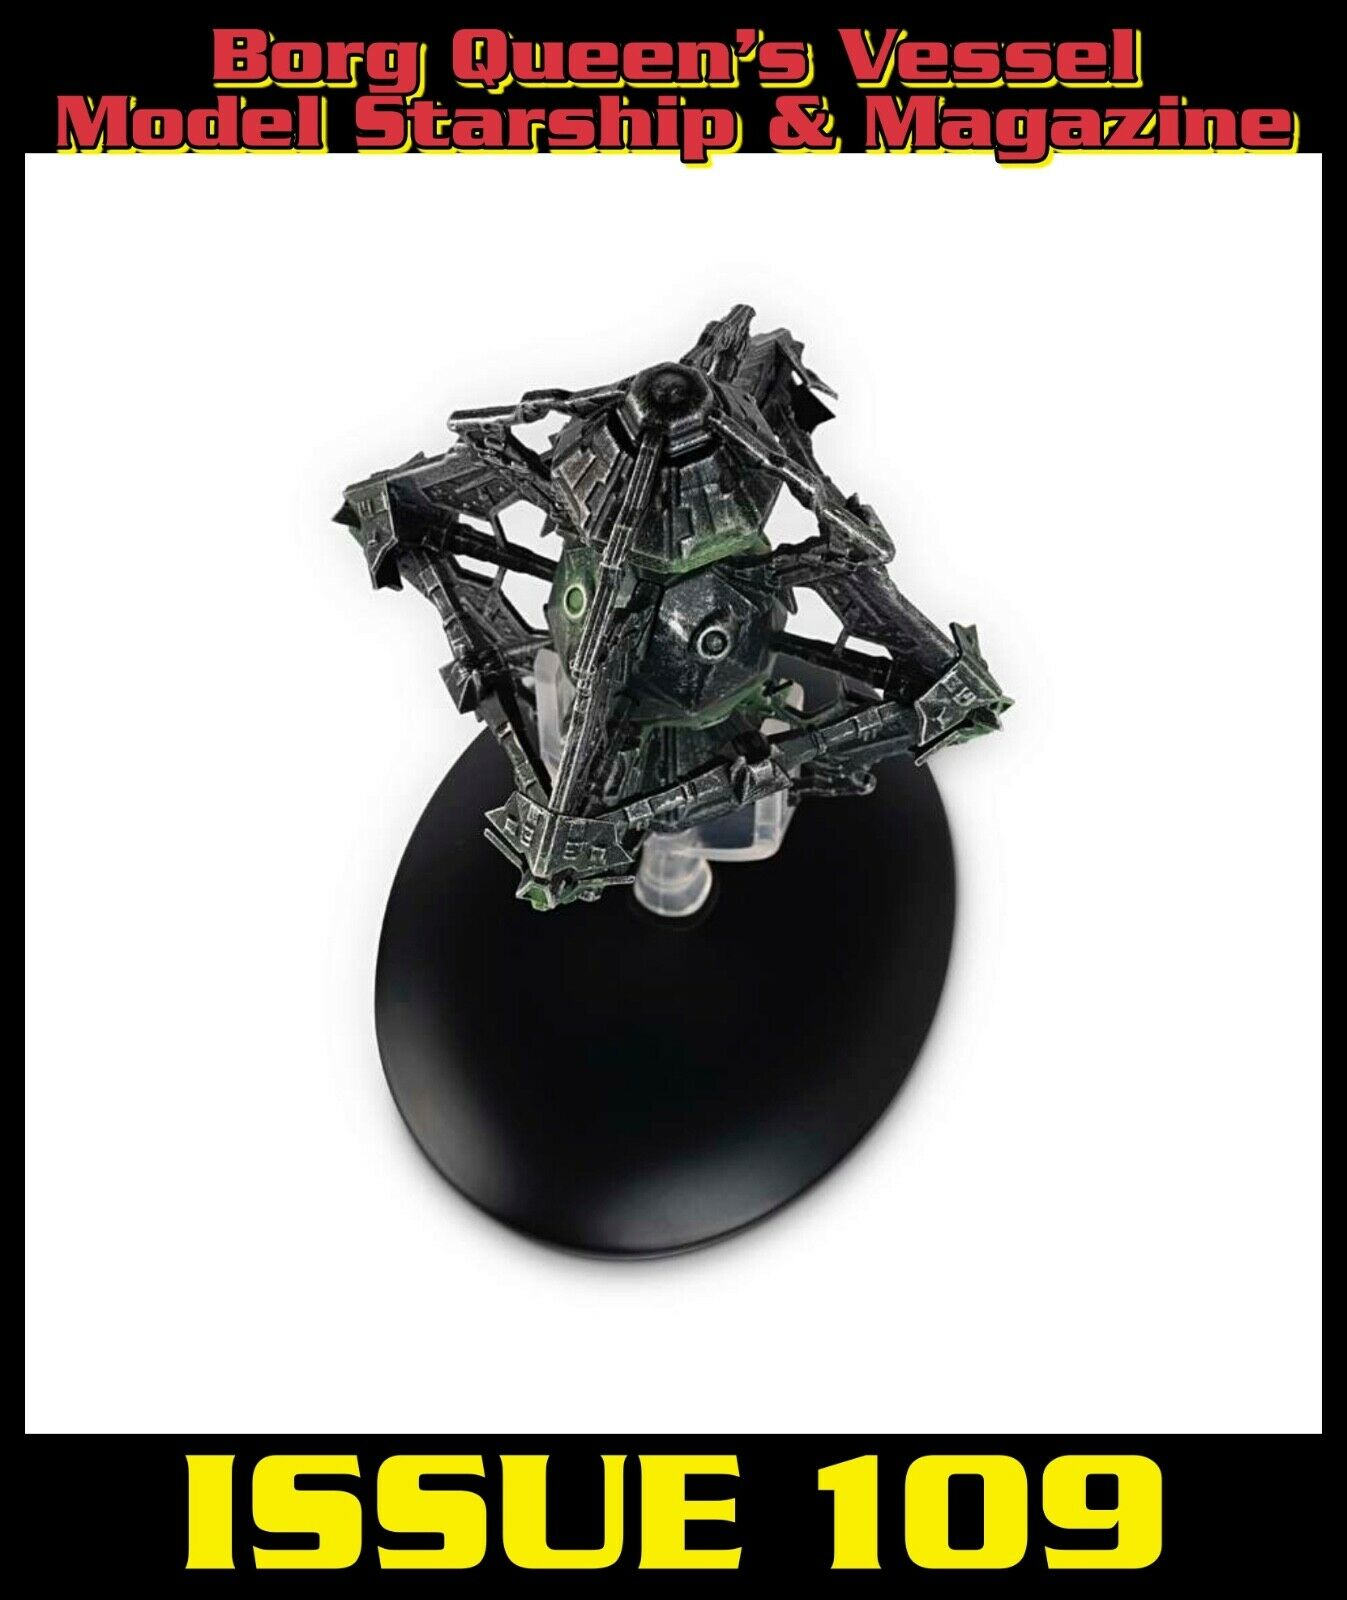 Issue 109: Borg Queen's Vessel